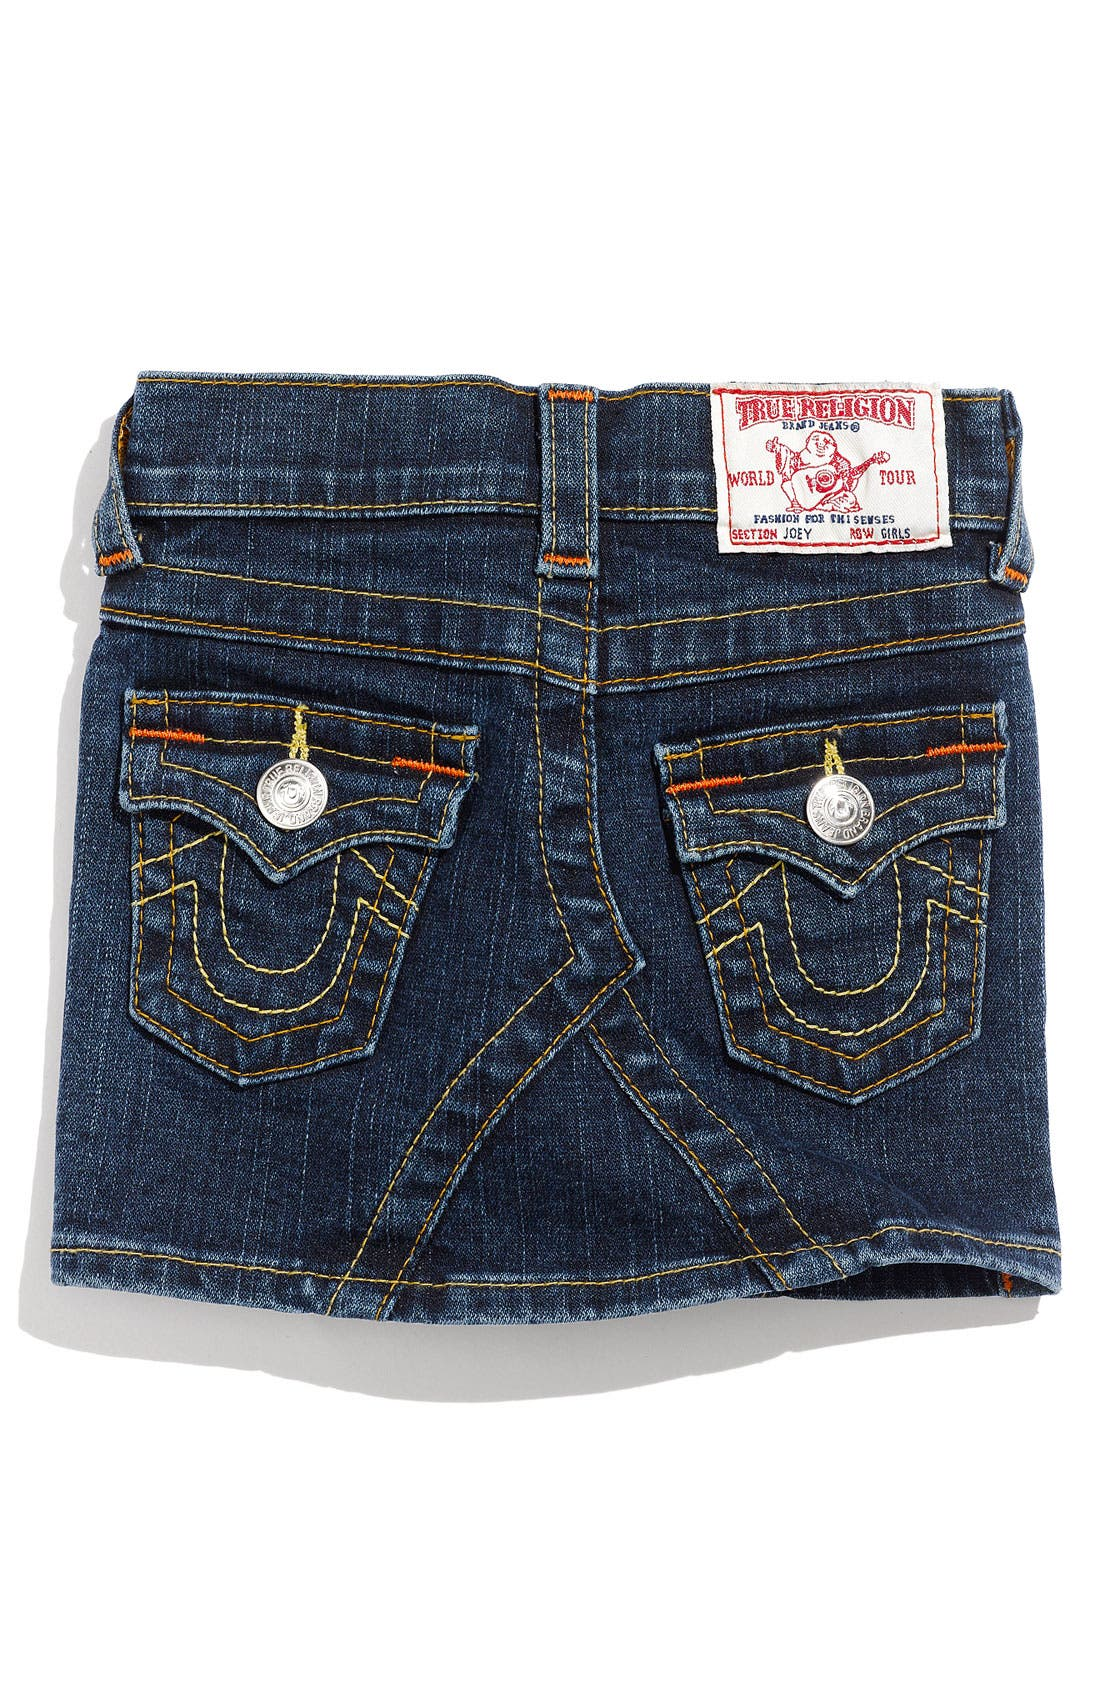 Alternate Image 1 Selected - True Religion Brand Jeans 'Joey' Skirt (Toddler)